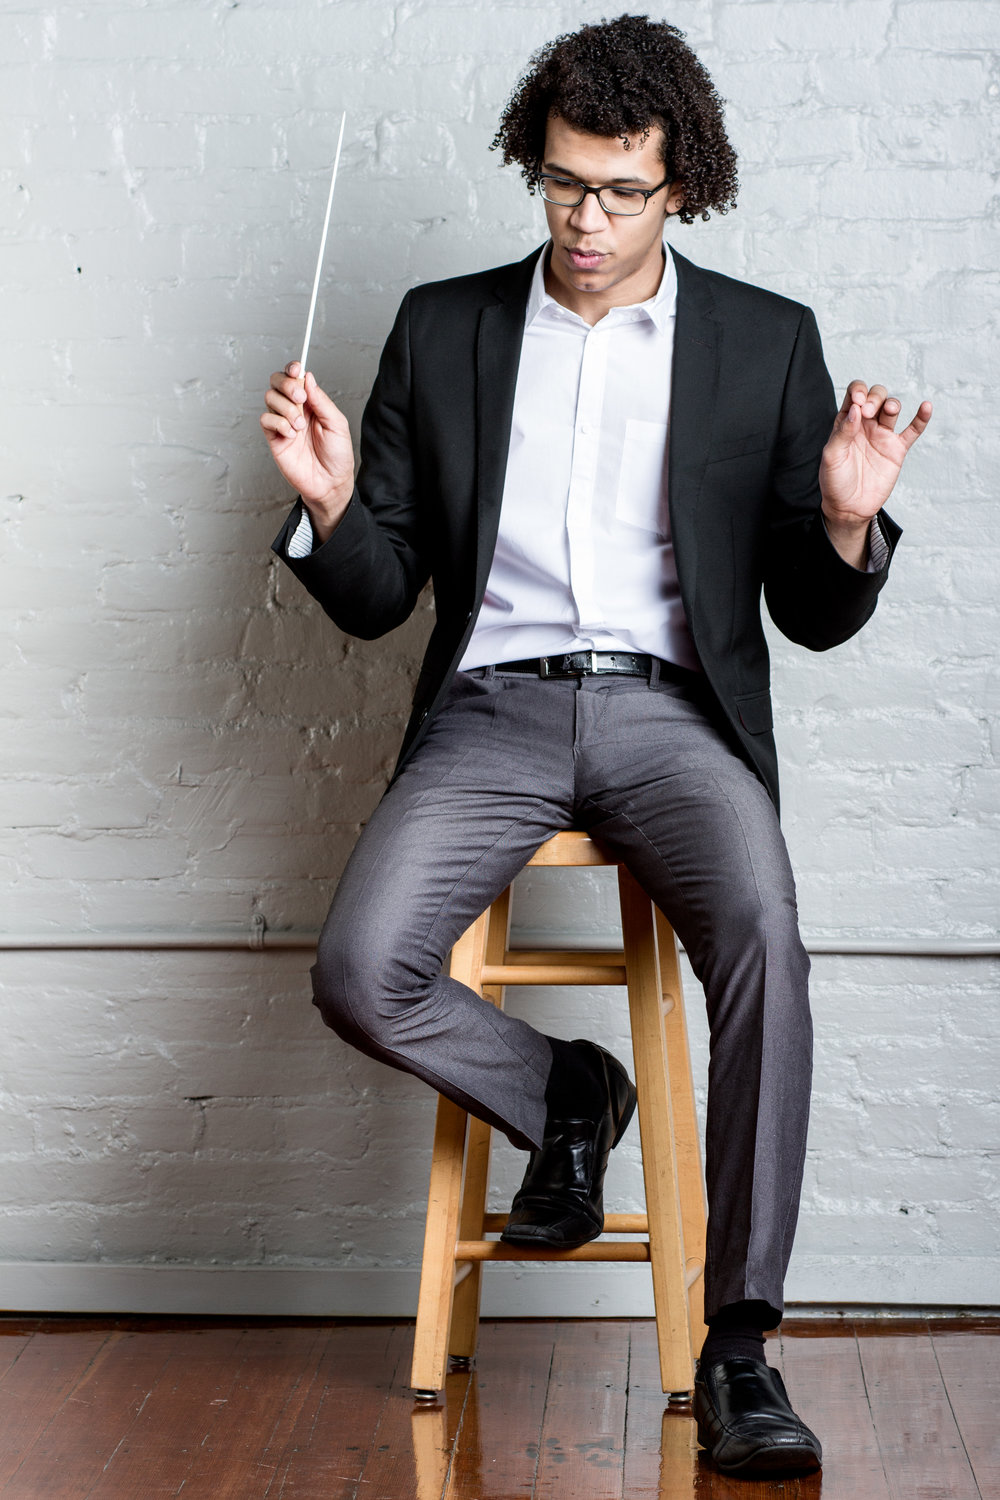 Jonathon Heyward casual conducting on stool.jpg